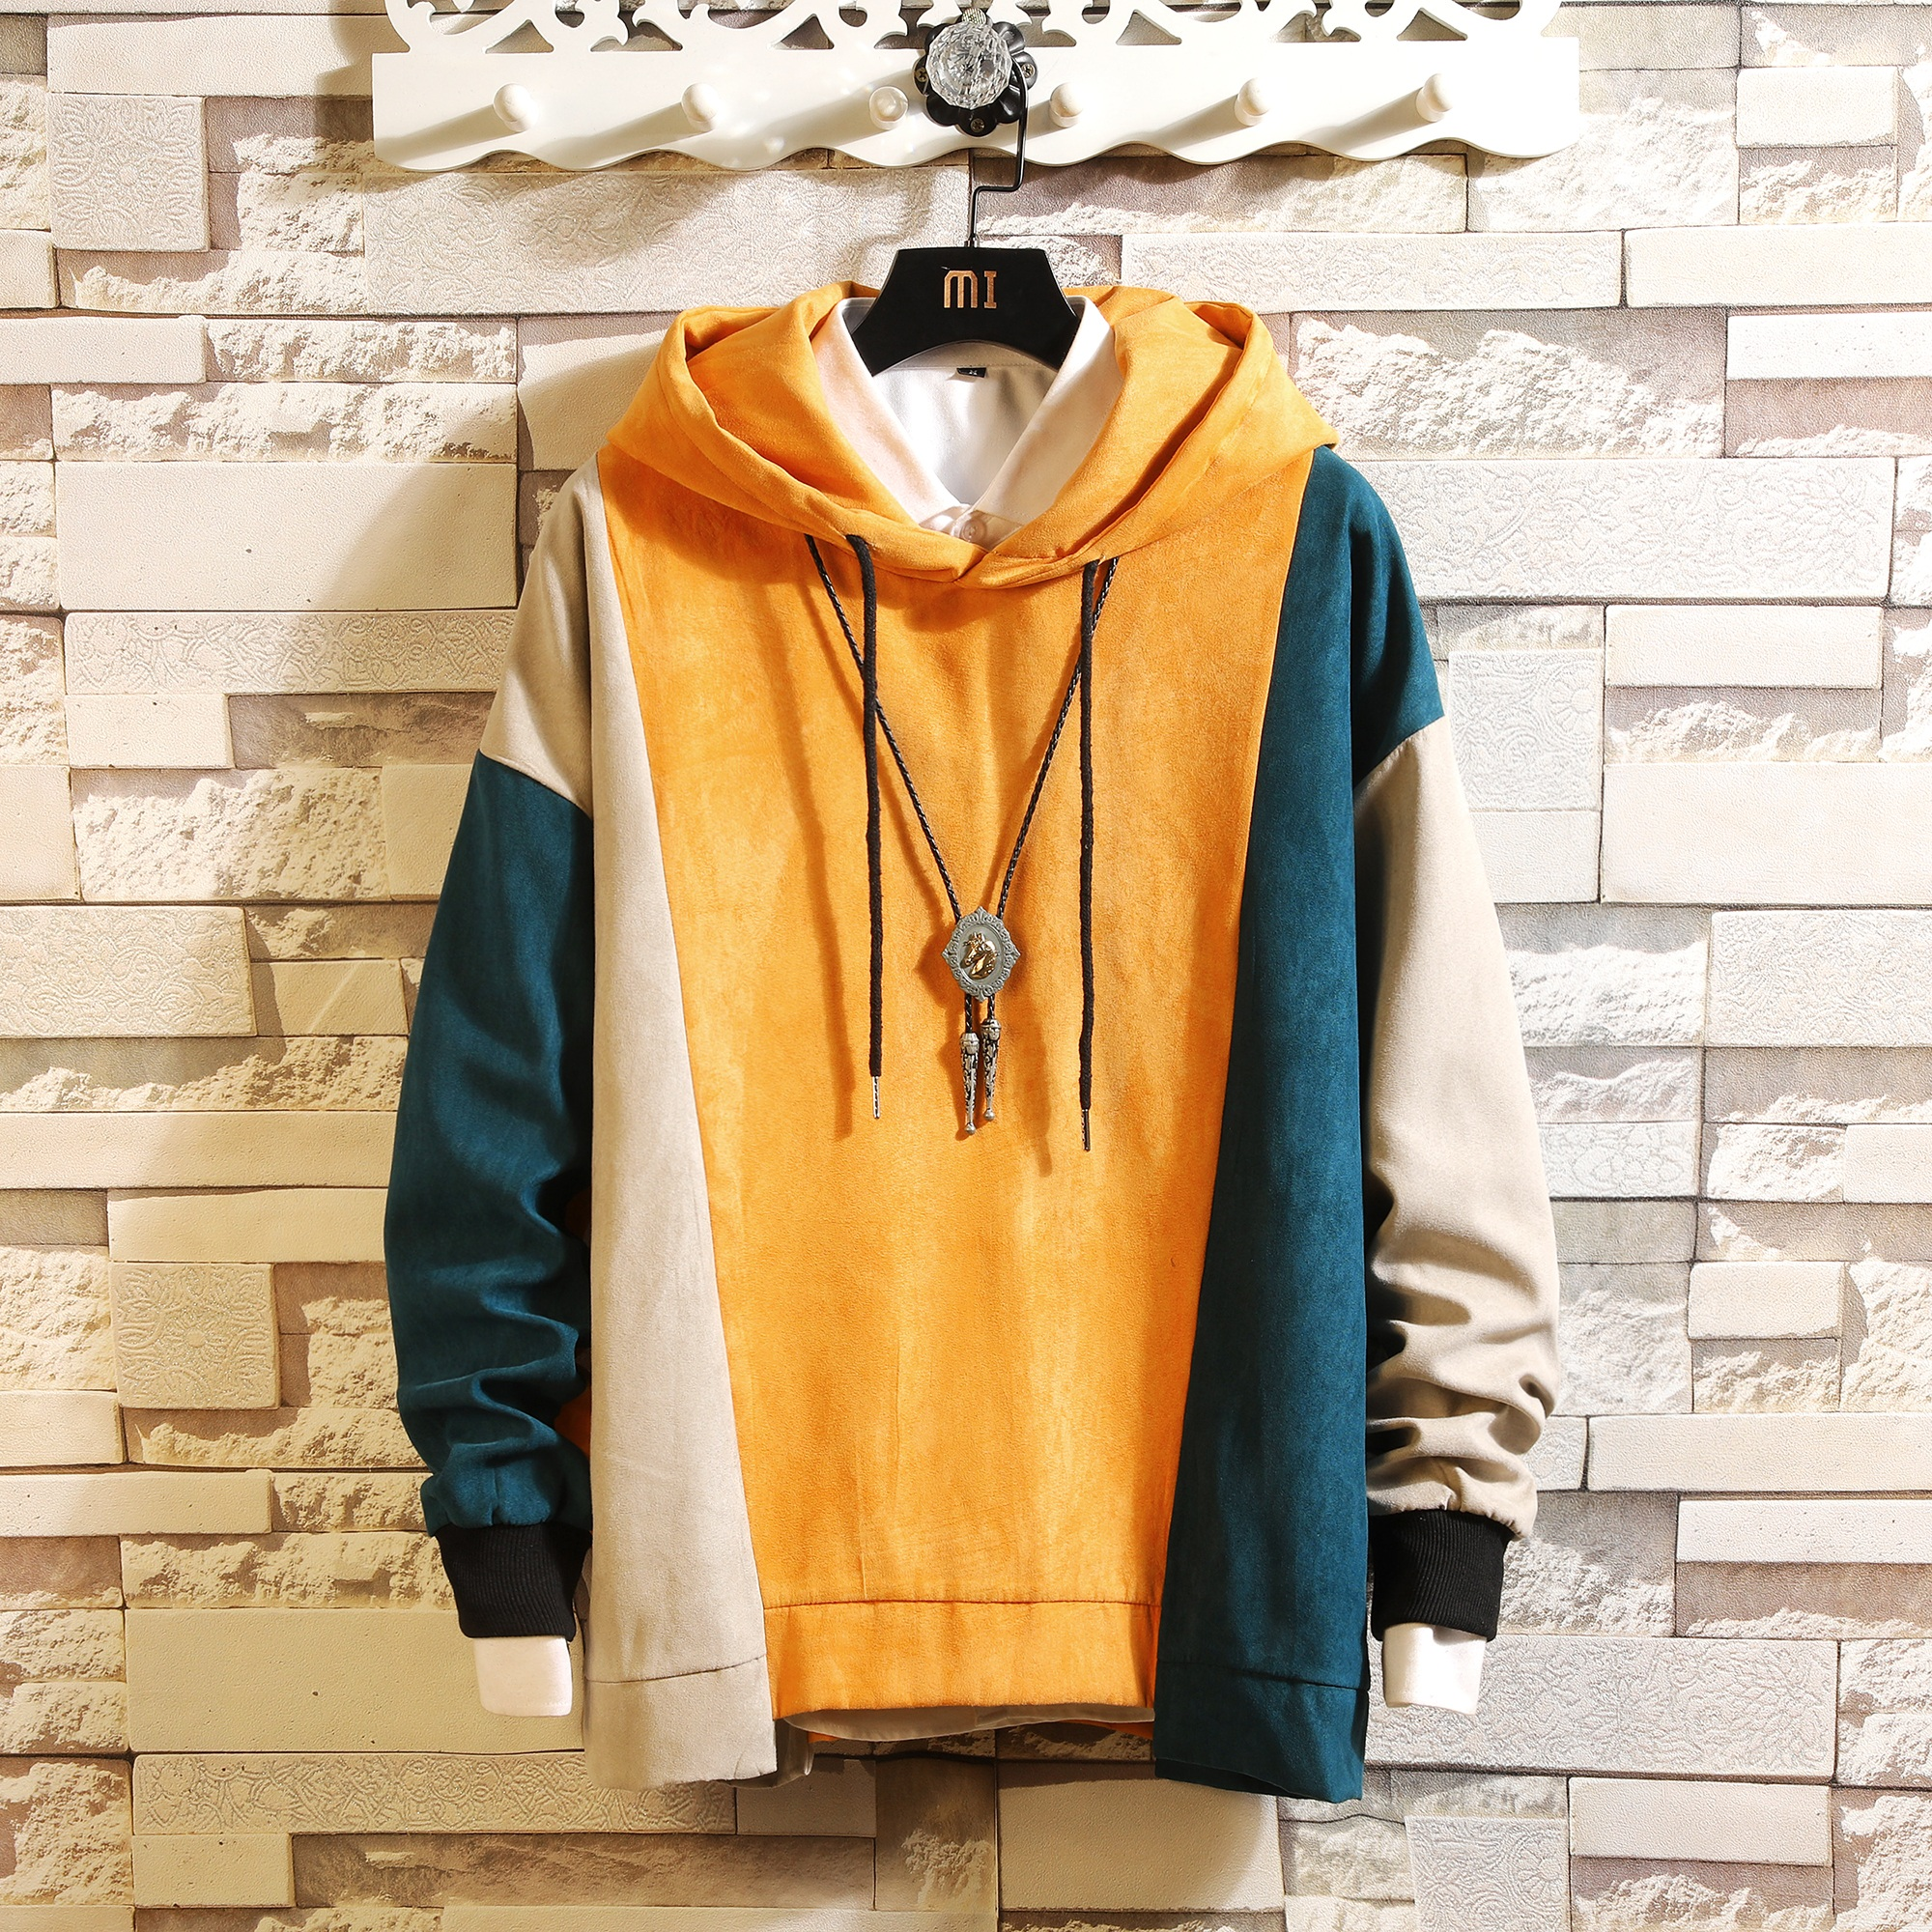 Striped Print High Quality Casual Hoodies And Sweatshirts 2019 Men Spring Autumn Clothes Plus Asian Size M-5XL